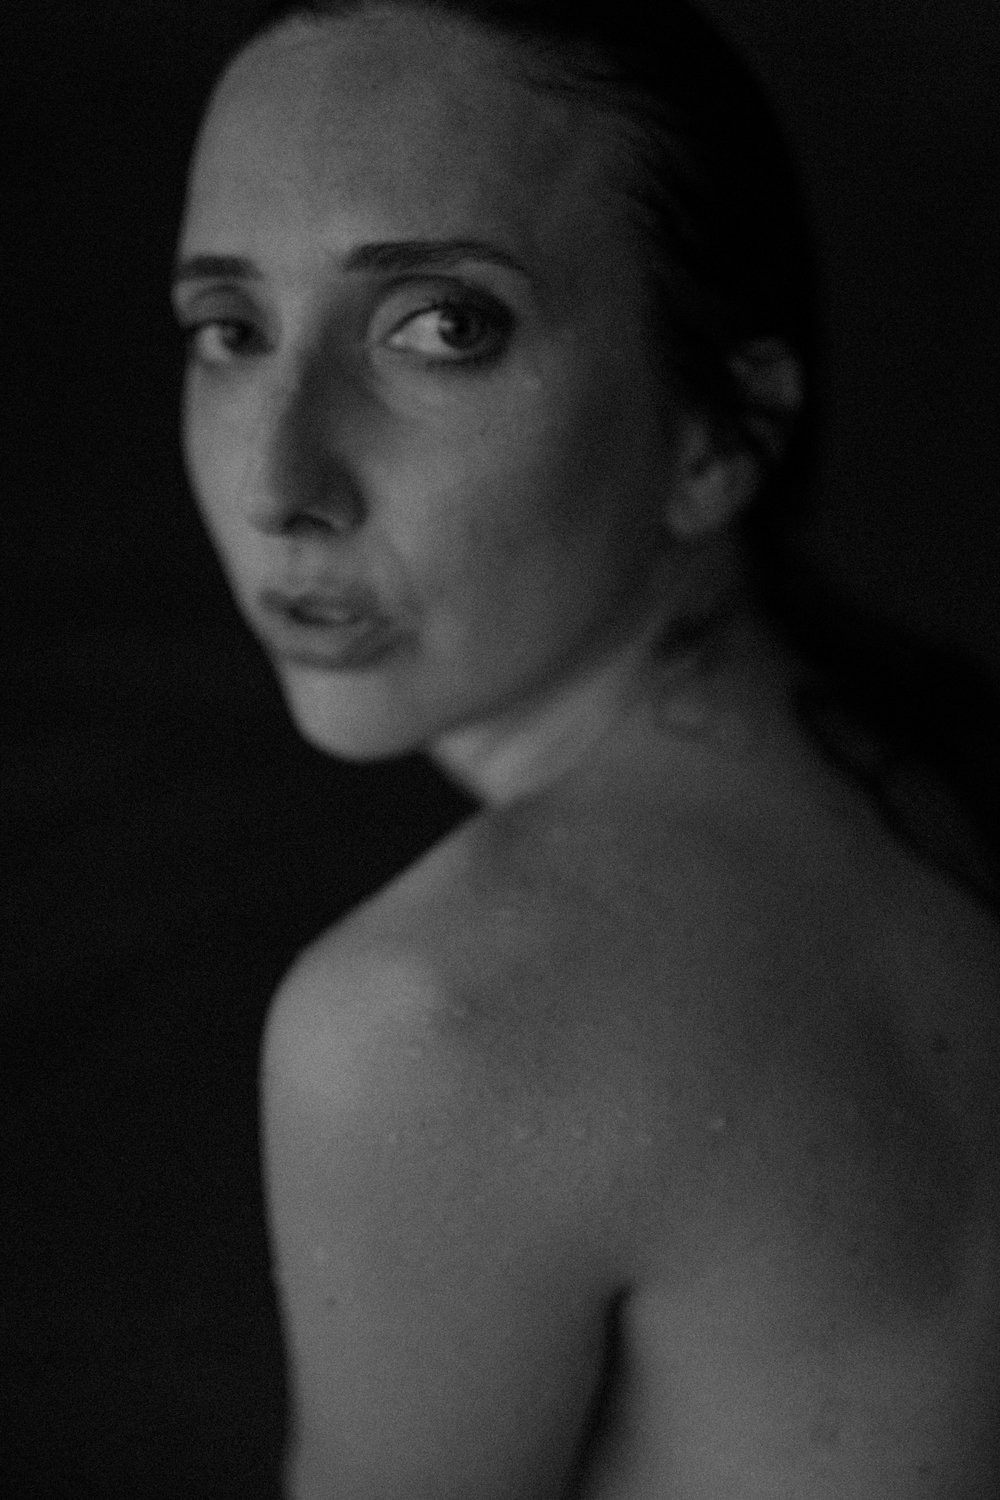 outdoor boudoir. boudoir inspiration. underwater nude. black and white portrait. underwater boudoir. art model. anoushanou. ohio boudoir photographer. sarah rose photography. i am sarah rose.